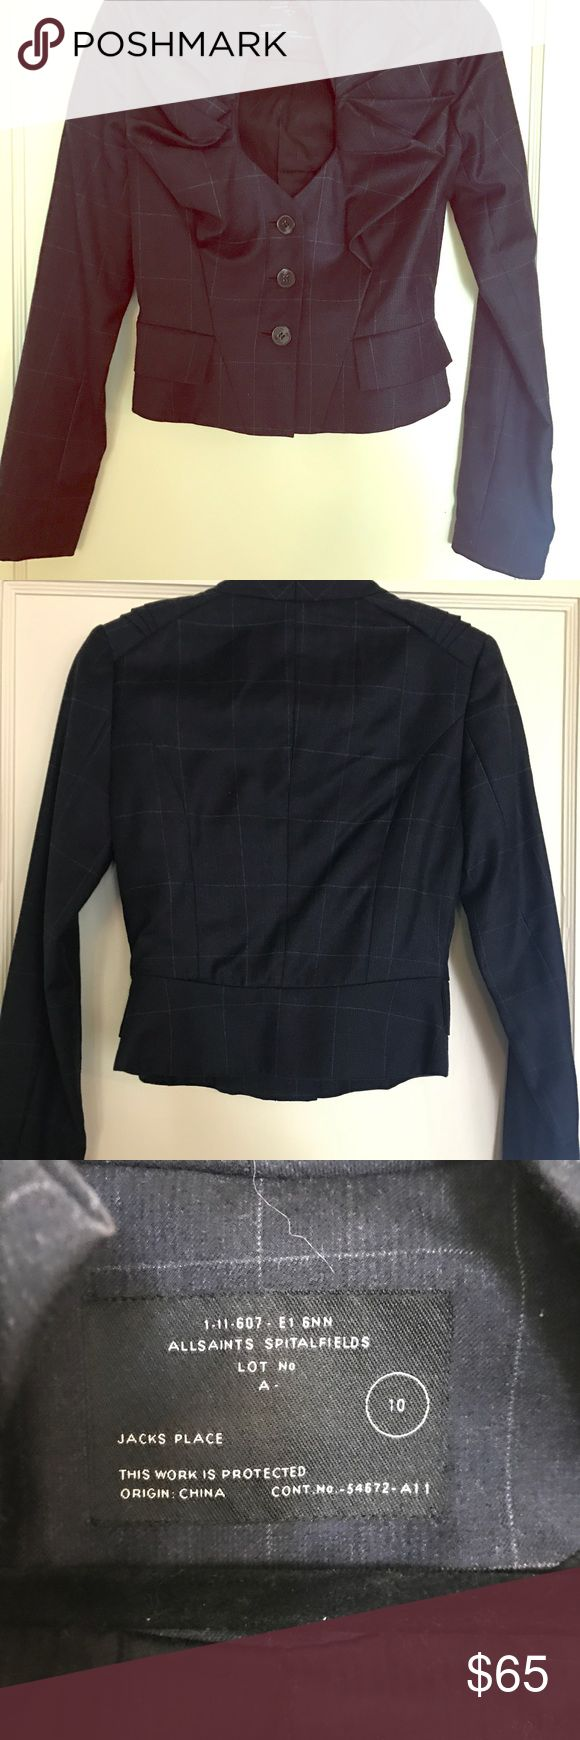 All saints blazer with ruffled collar plaid M-L This beautiful allsaints blazer is one of my fav items, but I've lost some weight and can no longer fill it out. I'd say it will fit a 6-8 because it runs a bit small. It's been worn only twice so there's no damage. It's perfect for work with black high waisted pants with wide legs or even a nice pencil skirt. Can be made more edgy with some jeans. All Saints Jackets & Coats Blazers